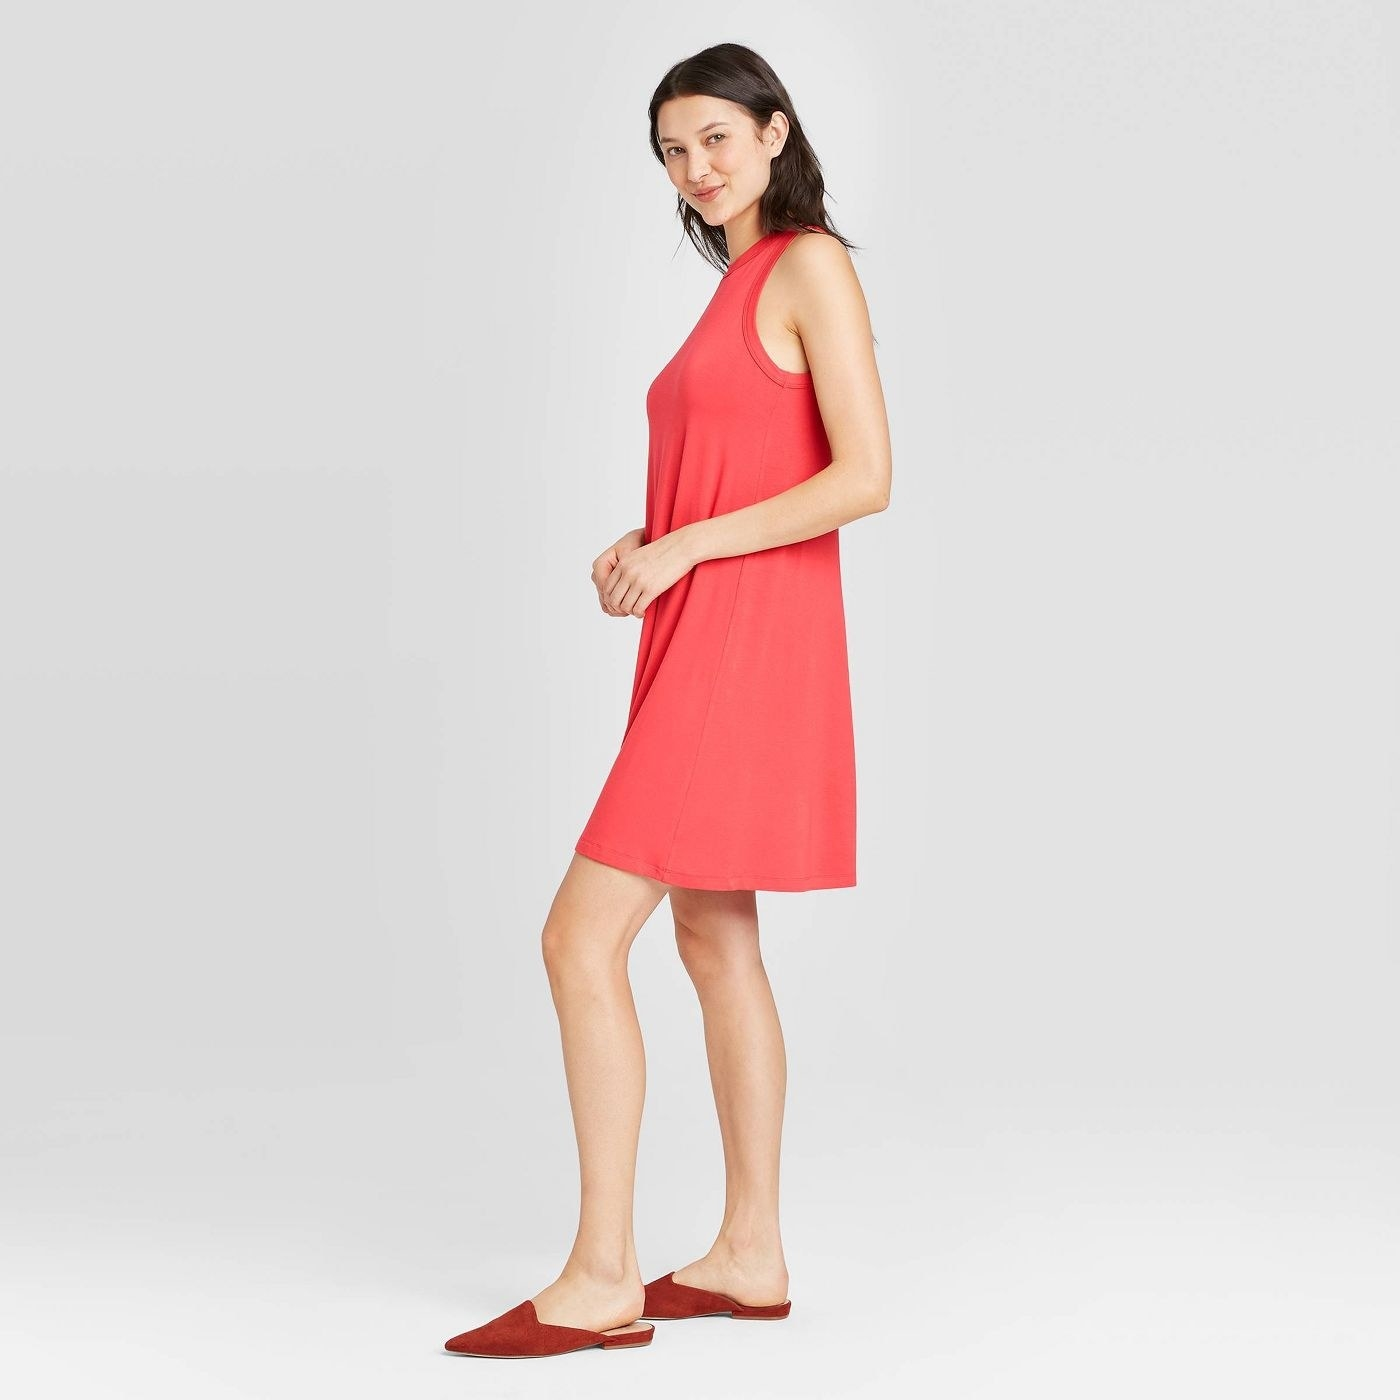 Model wearing a light red dress that hits above the knee